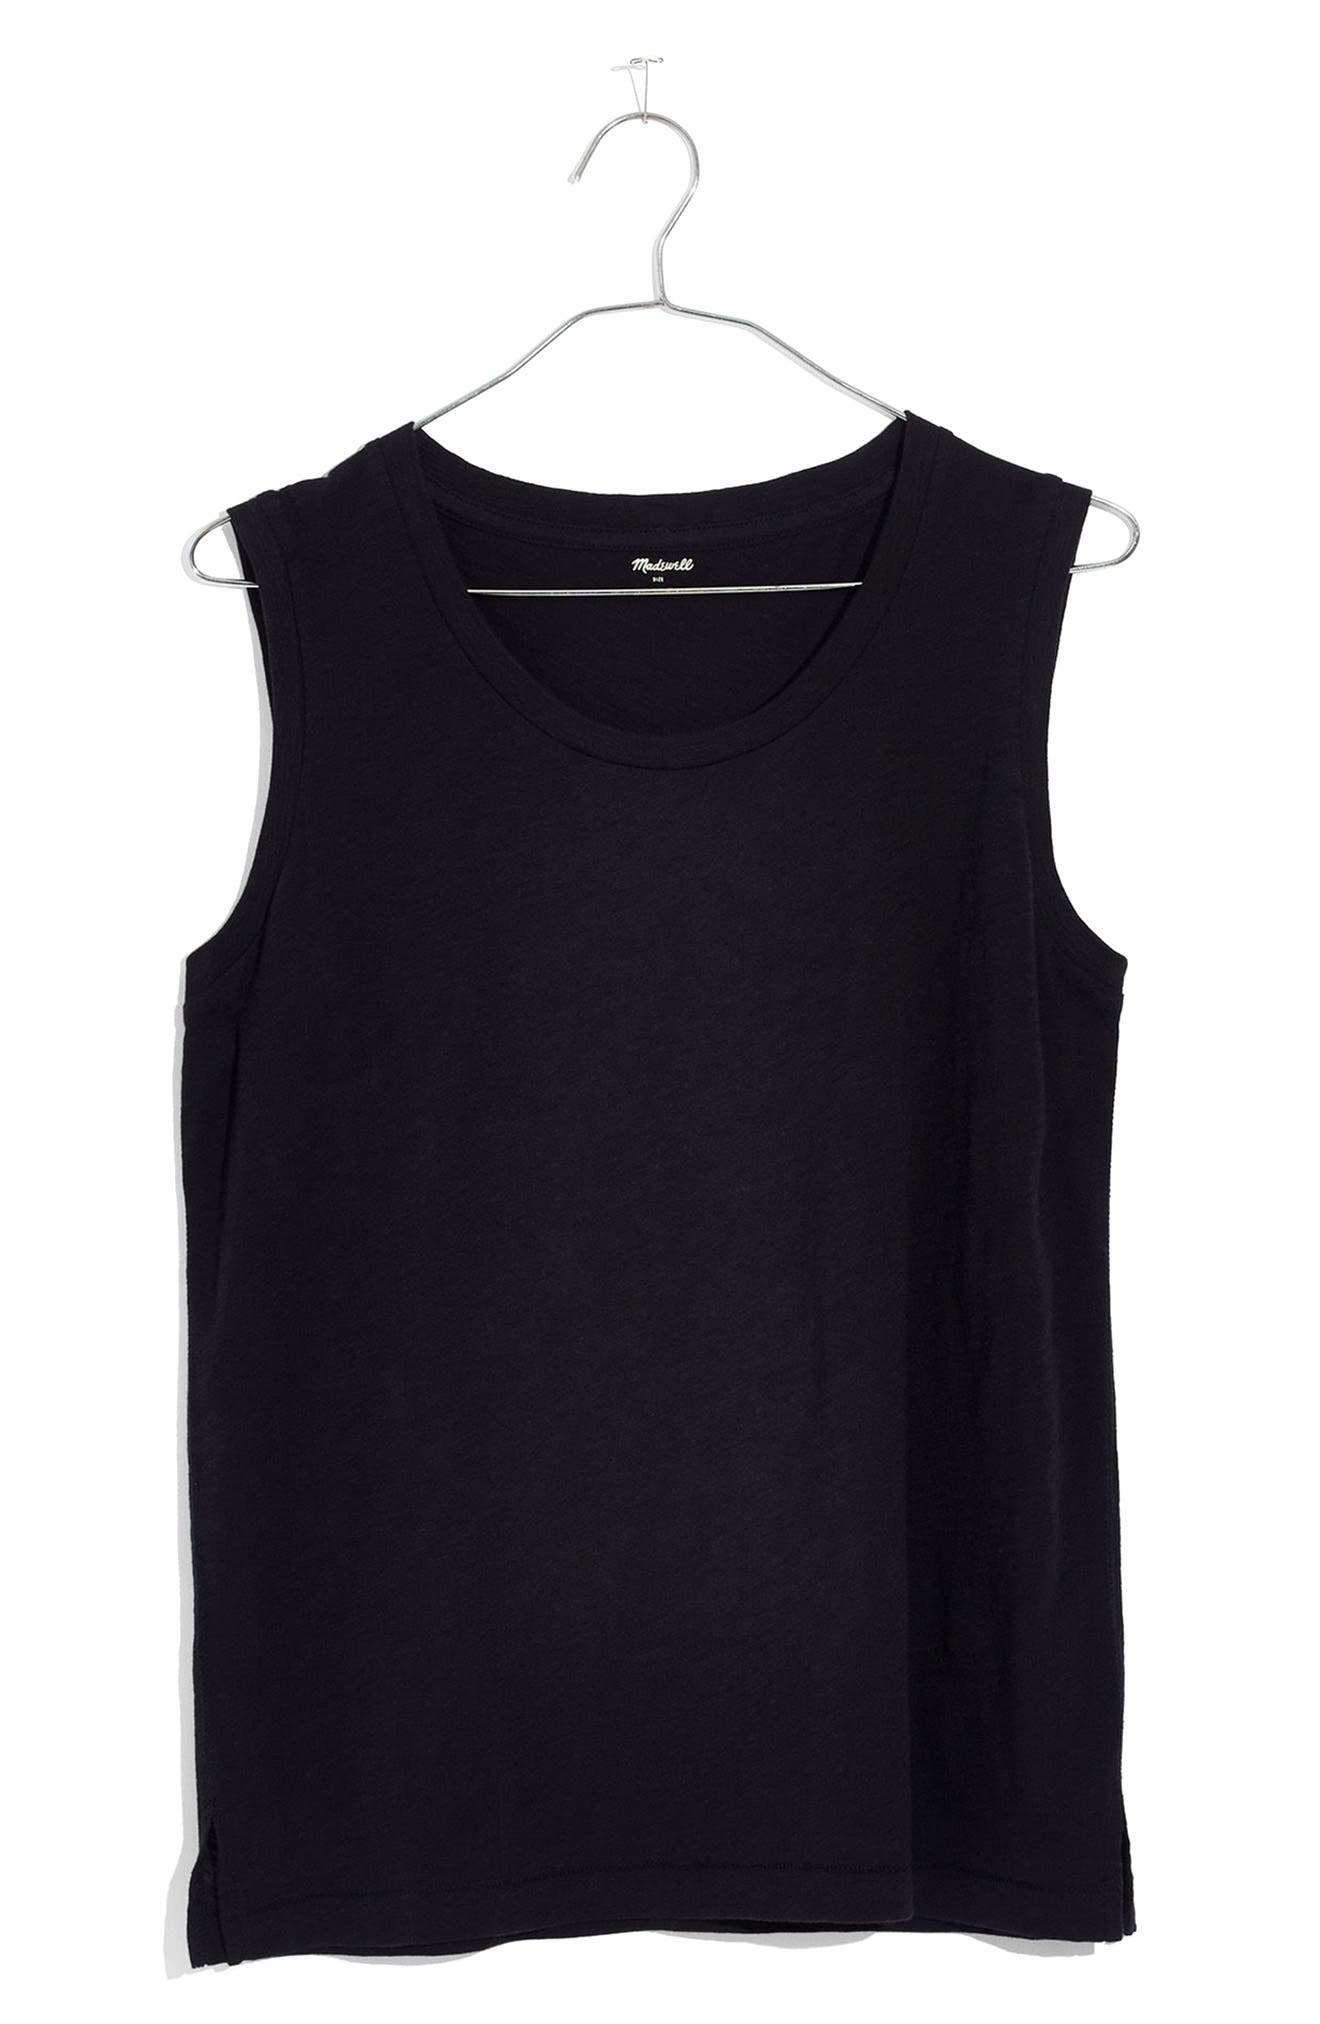 Alternate Image 1 Selected - Madewell Whisper Cotton Crewneck Muscle Tank